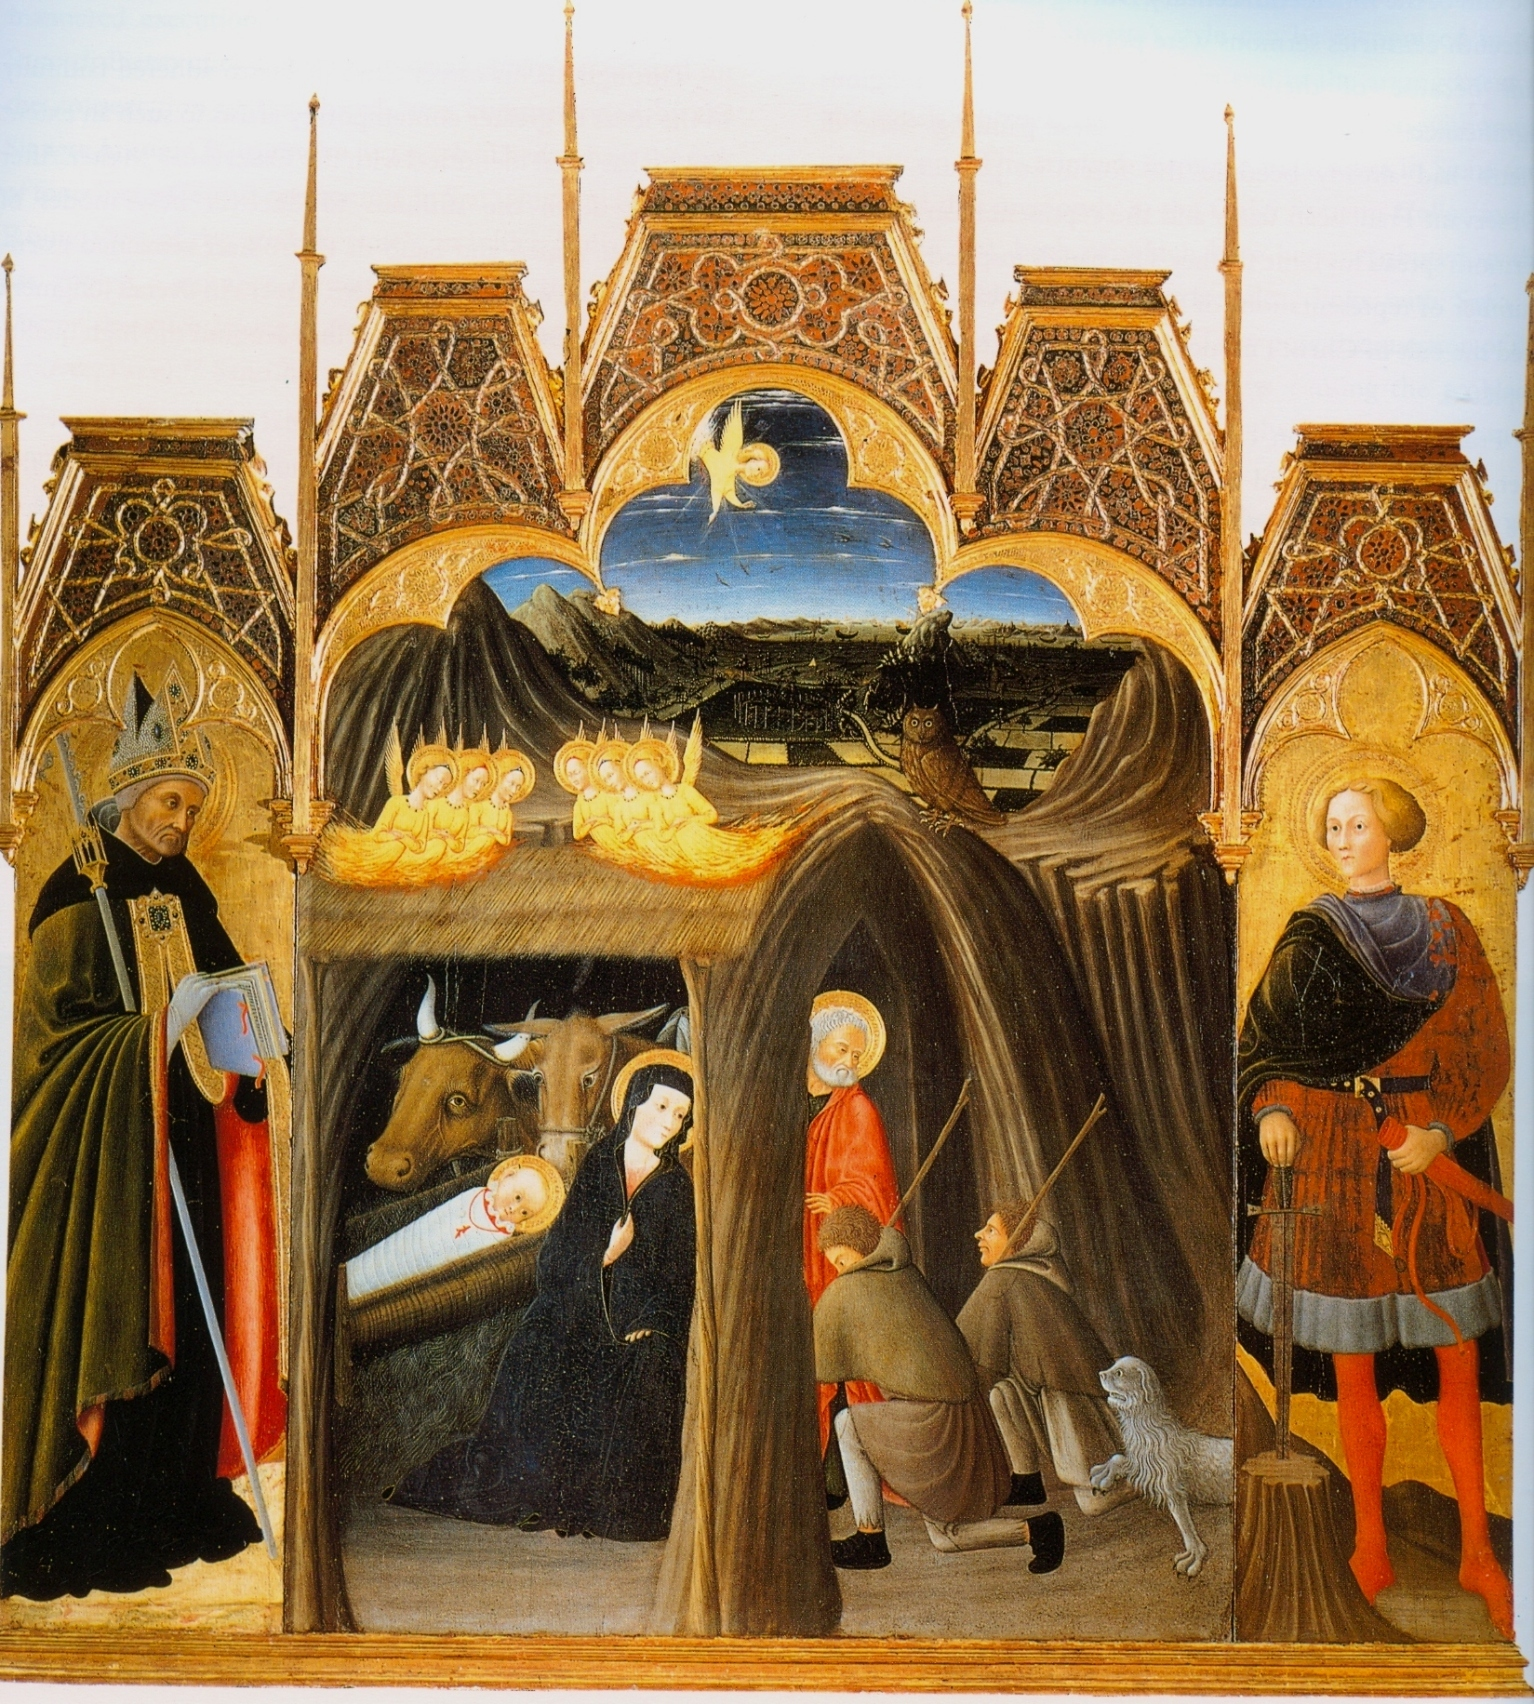 Pietro di Giovanni d'Ambrogio (1410–1449), Adoration of the Shepherds between Saints Augustin and Galgano, tempera on panel(1440 - 1449), 219 mm x 215,50 mm, sala Palazzo Corboli, Civic Archeological and Sacred Art Museum, Asciano